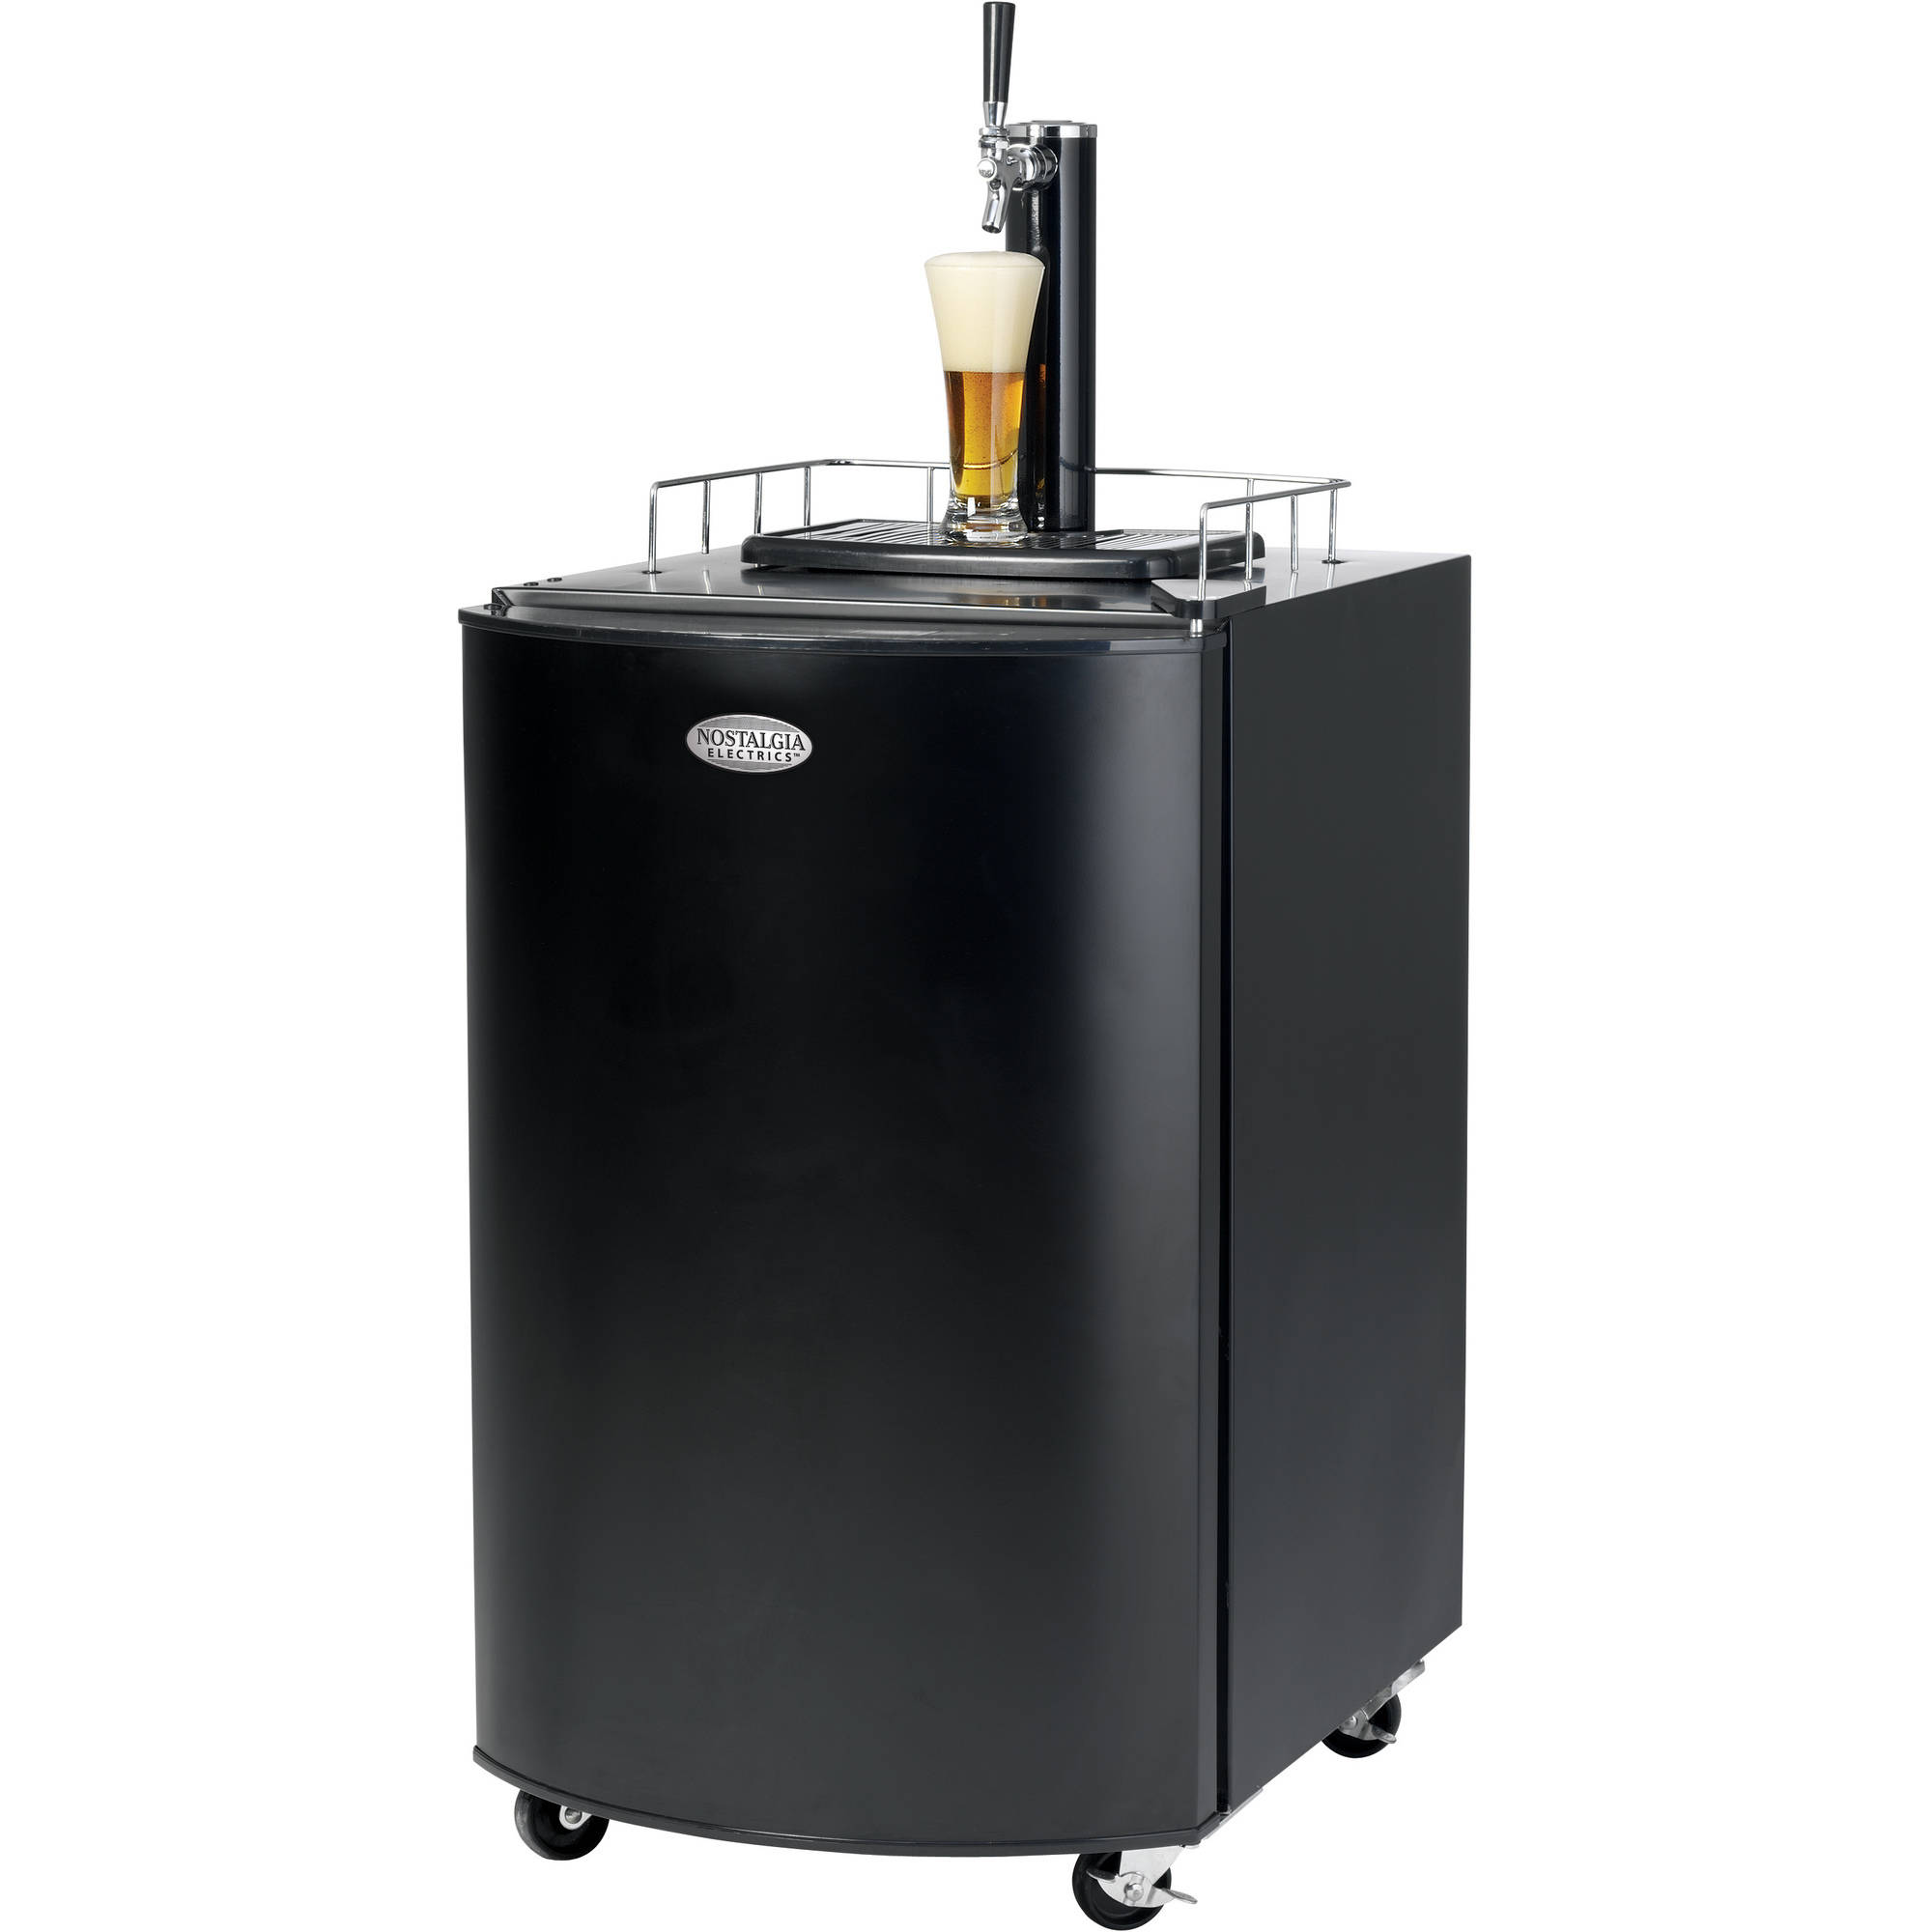 Nostalgia Electrics Kegorator Beer Keg Fridge